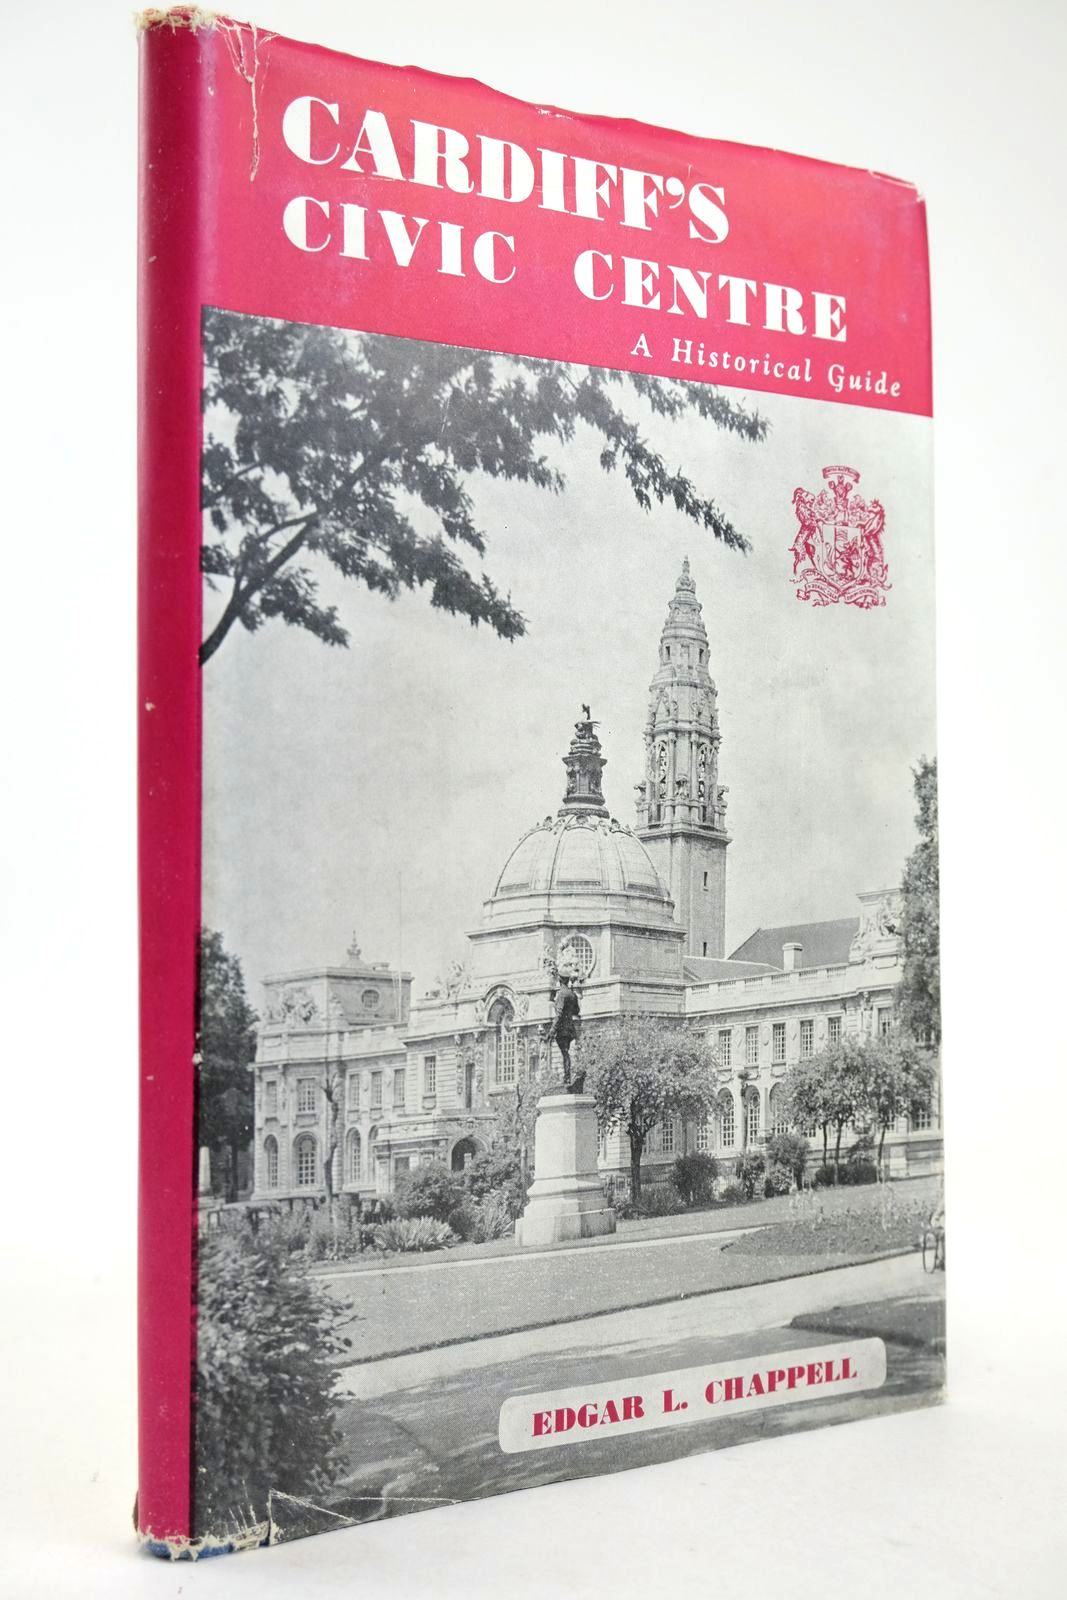 Photo of CARDIFF'S CIVIC CENTRE A HISTORICAL GUIDE written by Chappell, Edgar L. published by The Priory Press (STOCK CODE: 2132866)  for sale by Stella & Rose's Books